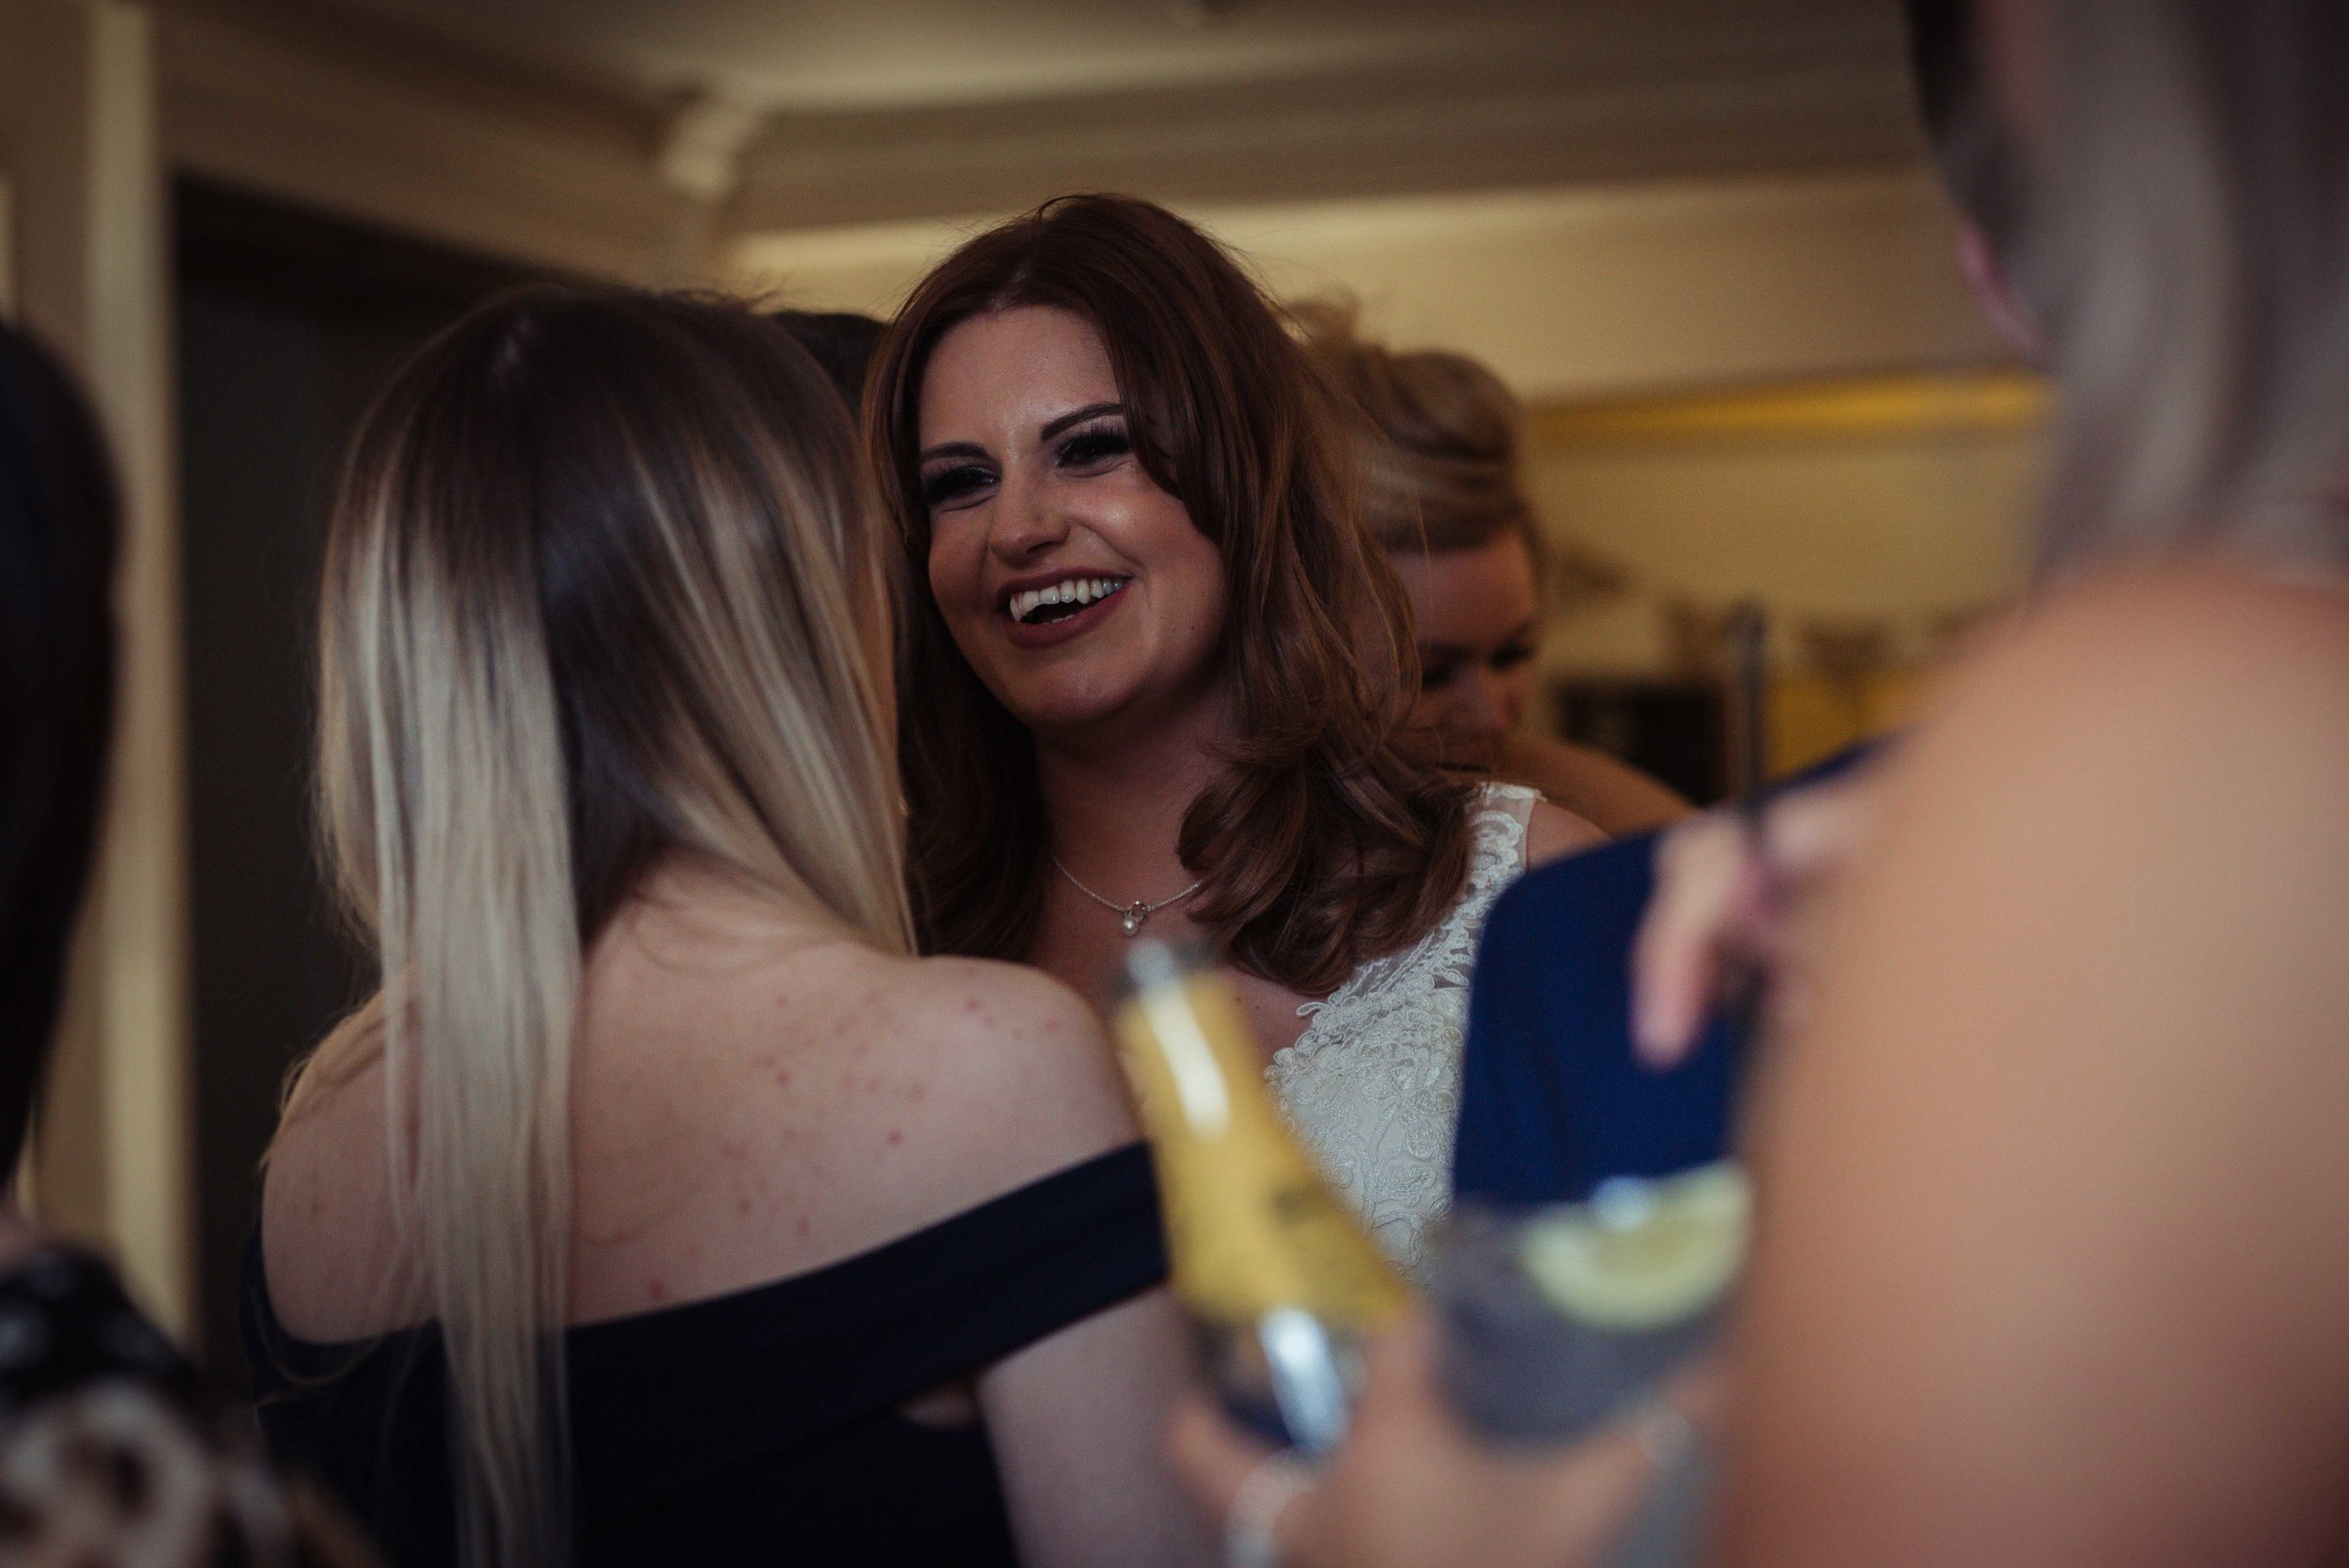 the bride stands chatting to her female friends in the bar